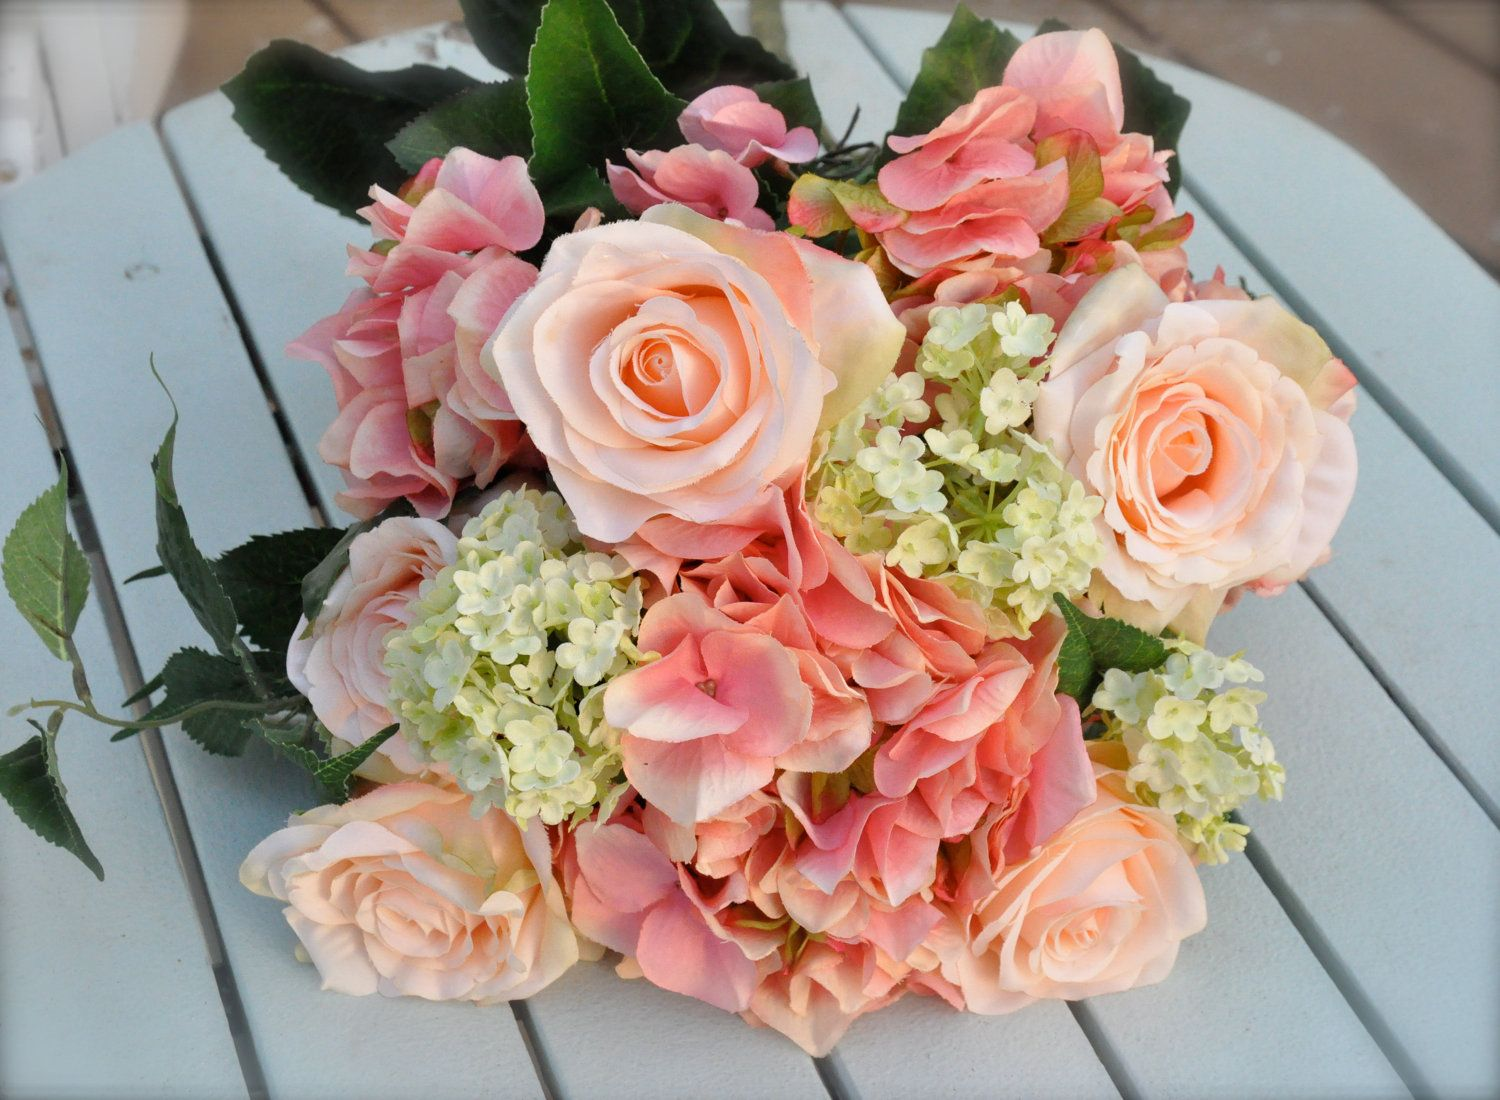 brides wedding bouquets with hydrangeas | Coral salmon ...